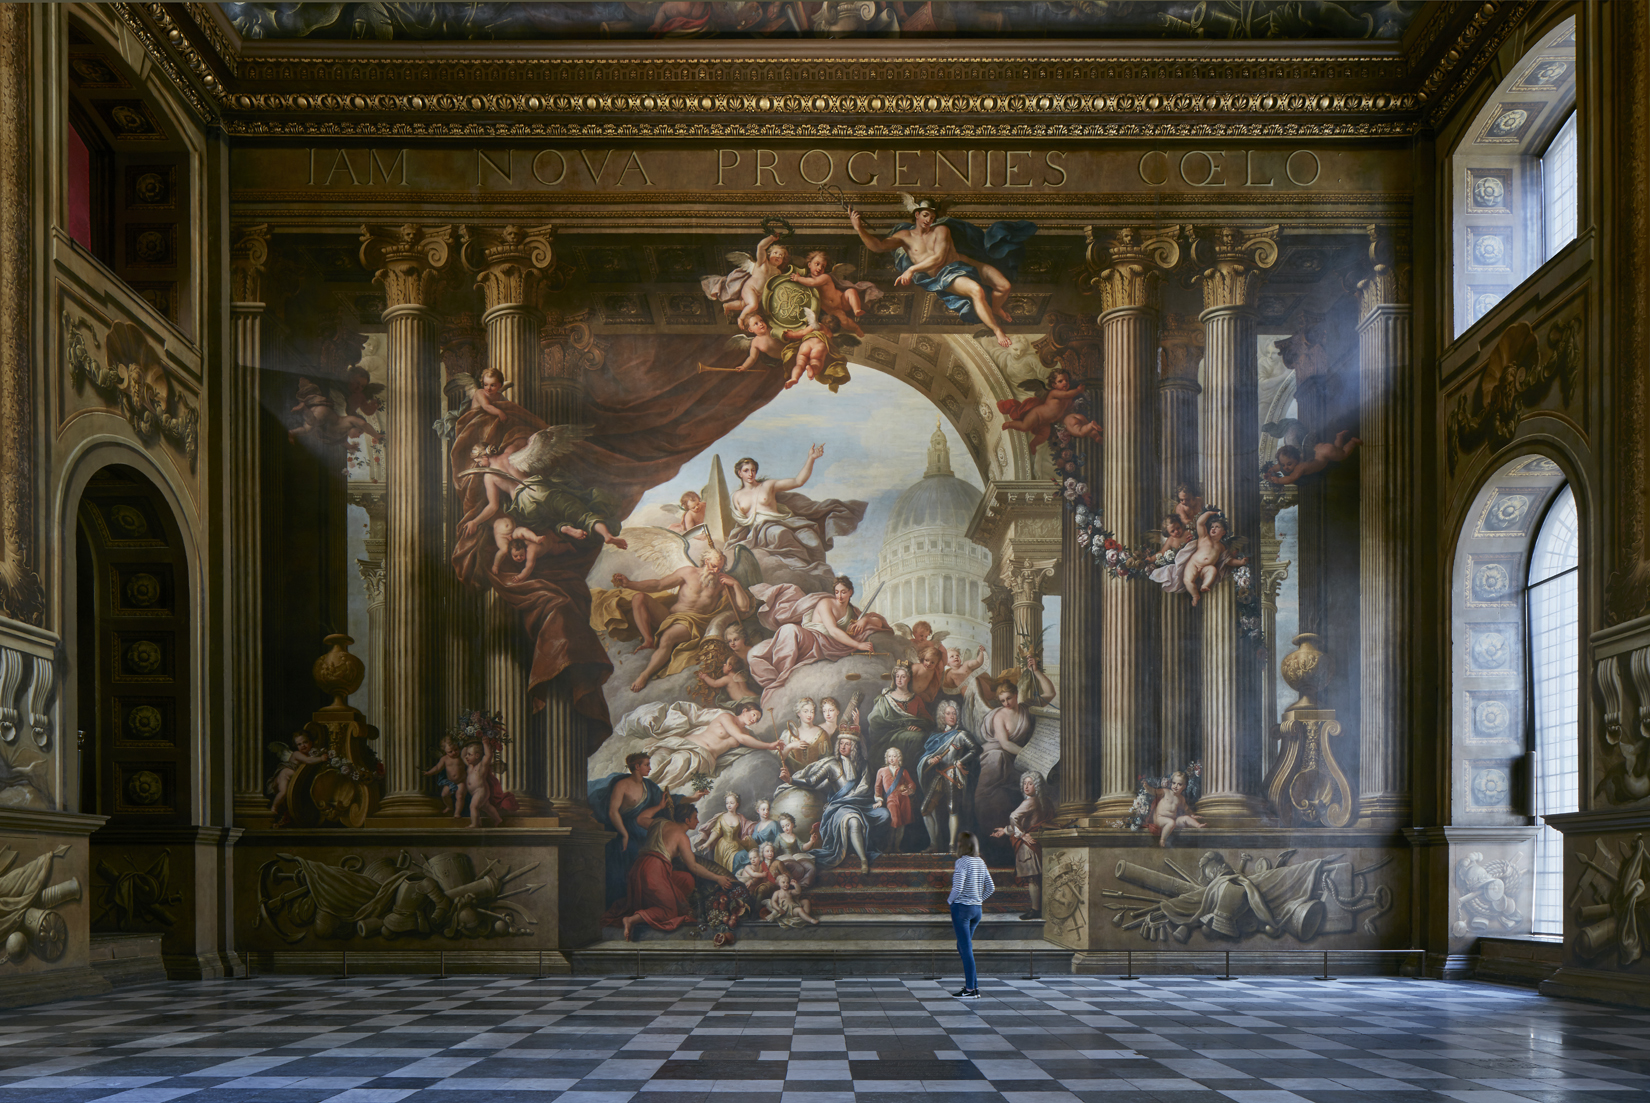 James Brittain: Photographing the Painted Hall   Architectural photographer James Brittain on documenting this restored masterpiece in the Old Royal Naval College in Greenwich.